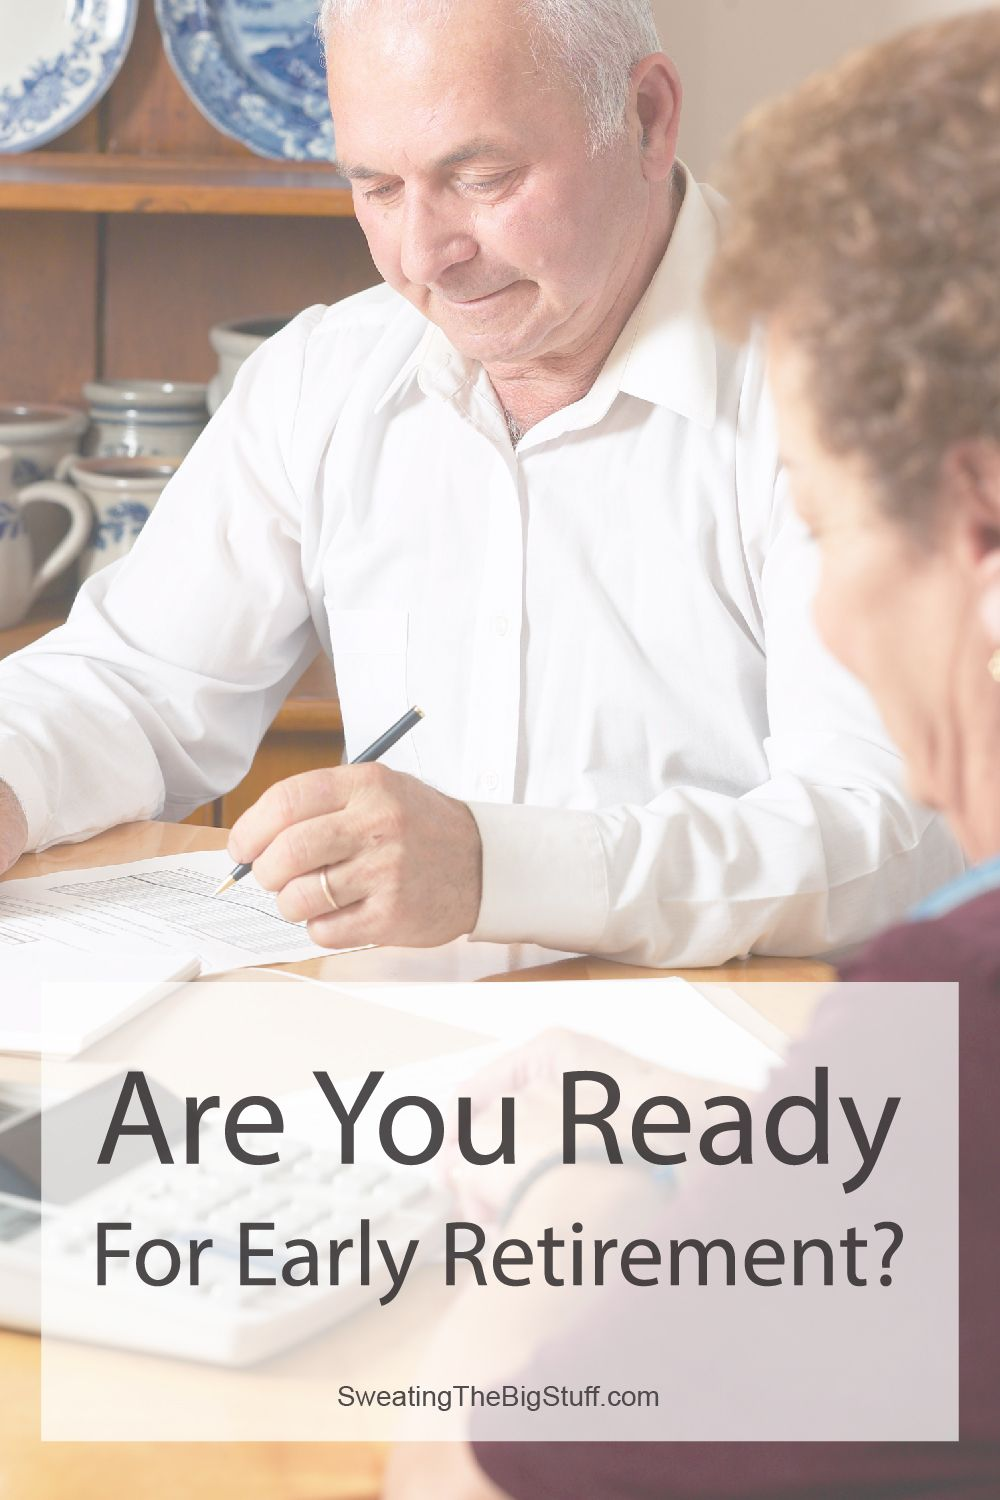 Are You Ready For Early Retirement?